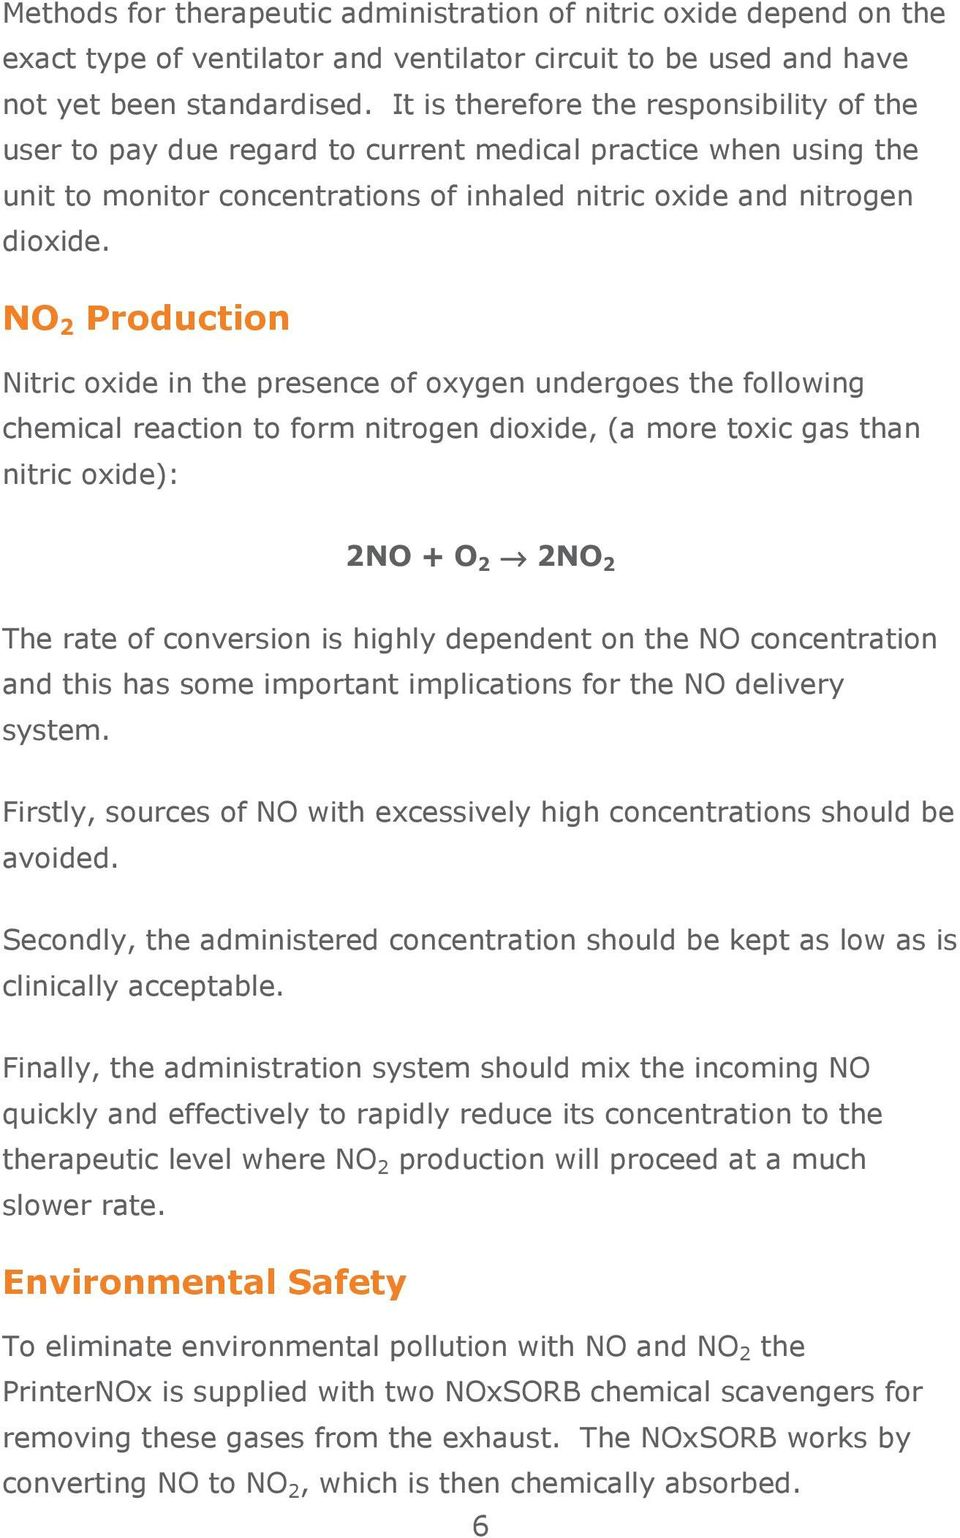 NO 2 Production Nitric oxide in the presence of oxygen undergoes the following chemical reaction to form nitrogen dioxide, (a more toxic gas than nitric oxide): 2NO + O 2 2NO 2 The rate of conversion